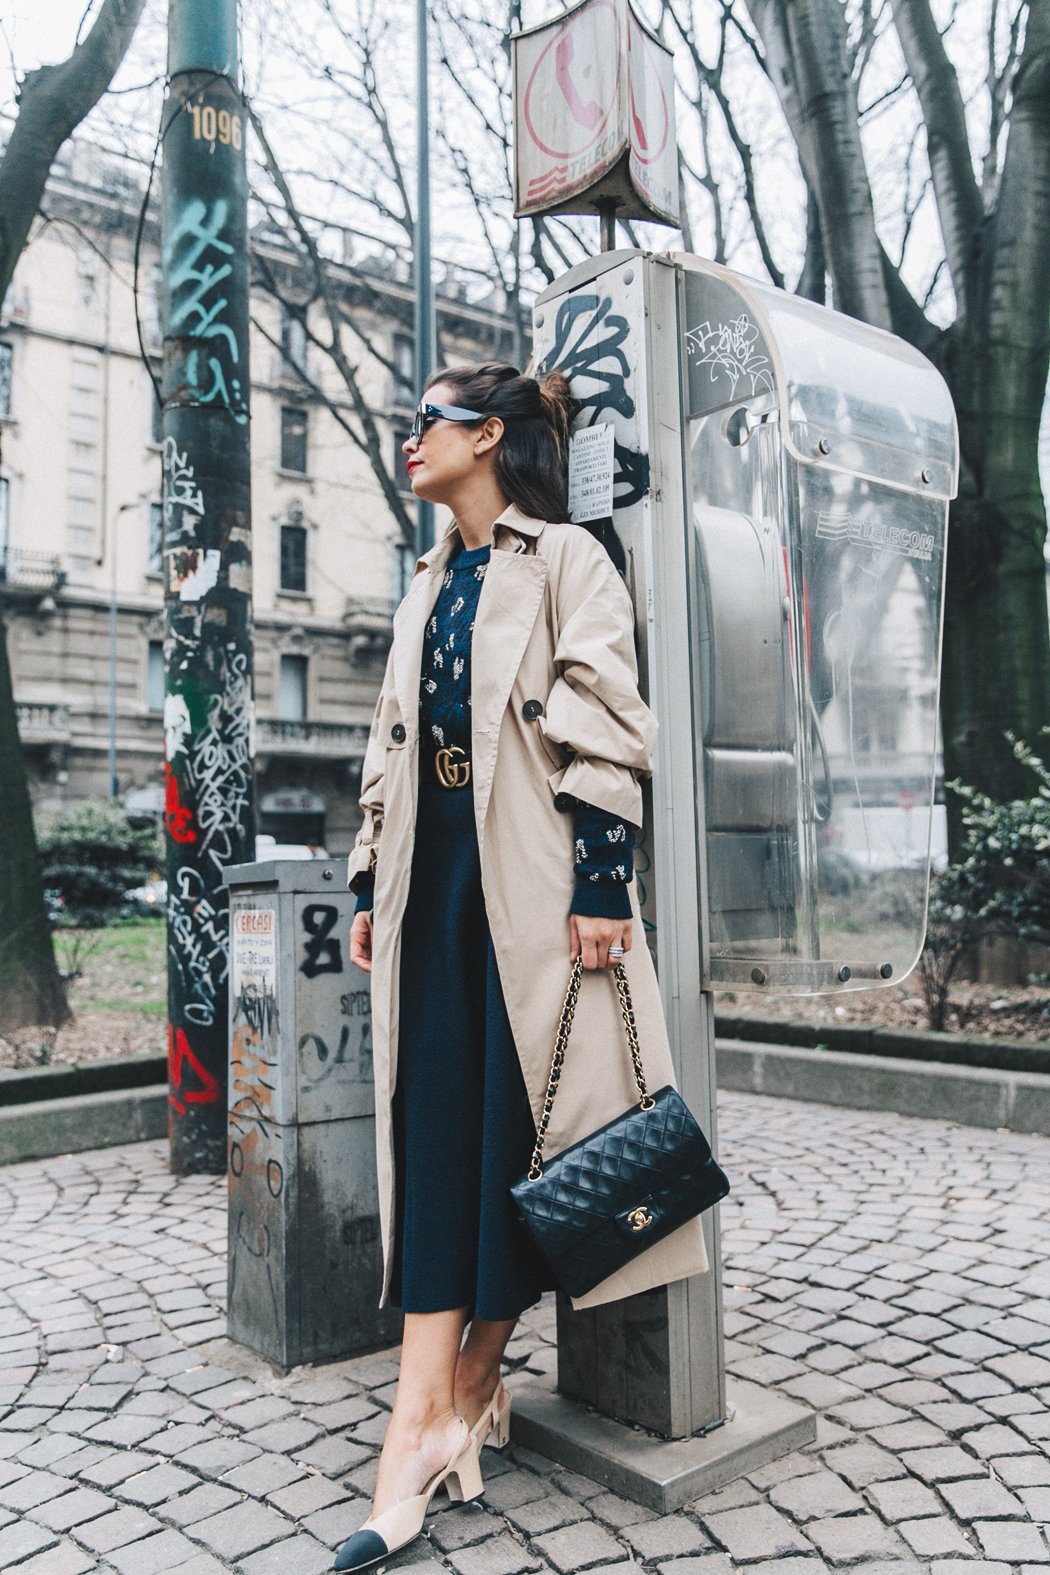 Trench_Edited-Leopard_Sweater-Midi_Skirt-Chanel_Slingback_Shoes-Chanel_Vintage_Bag-Ouftit_Streetstyle-32